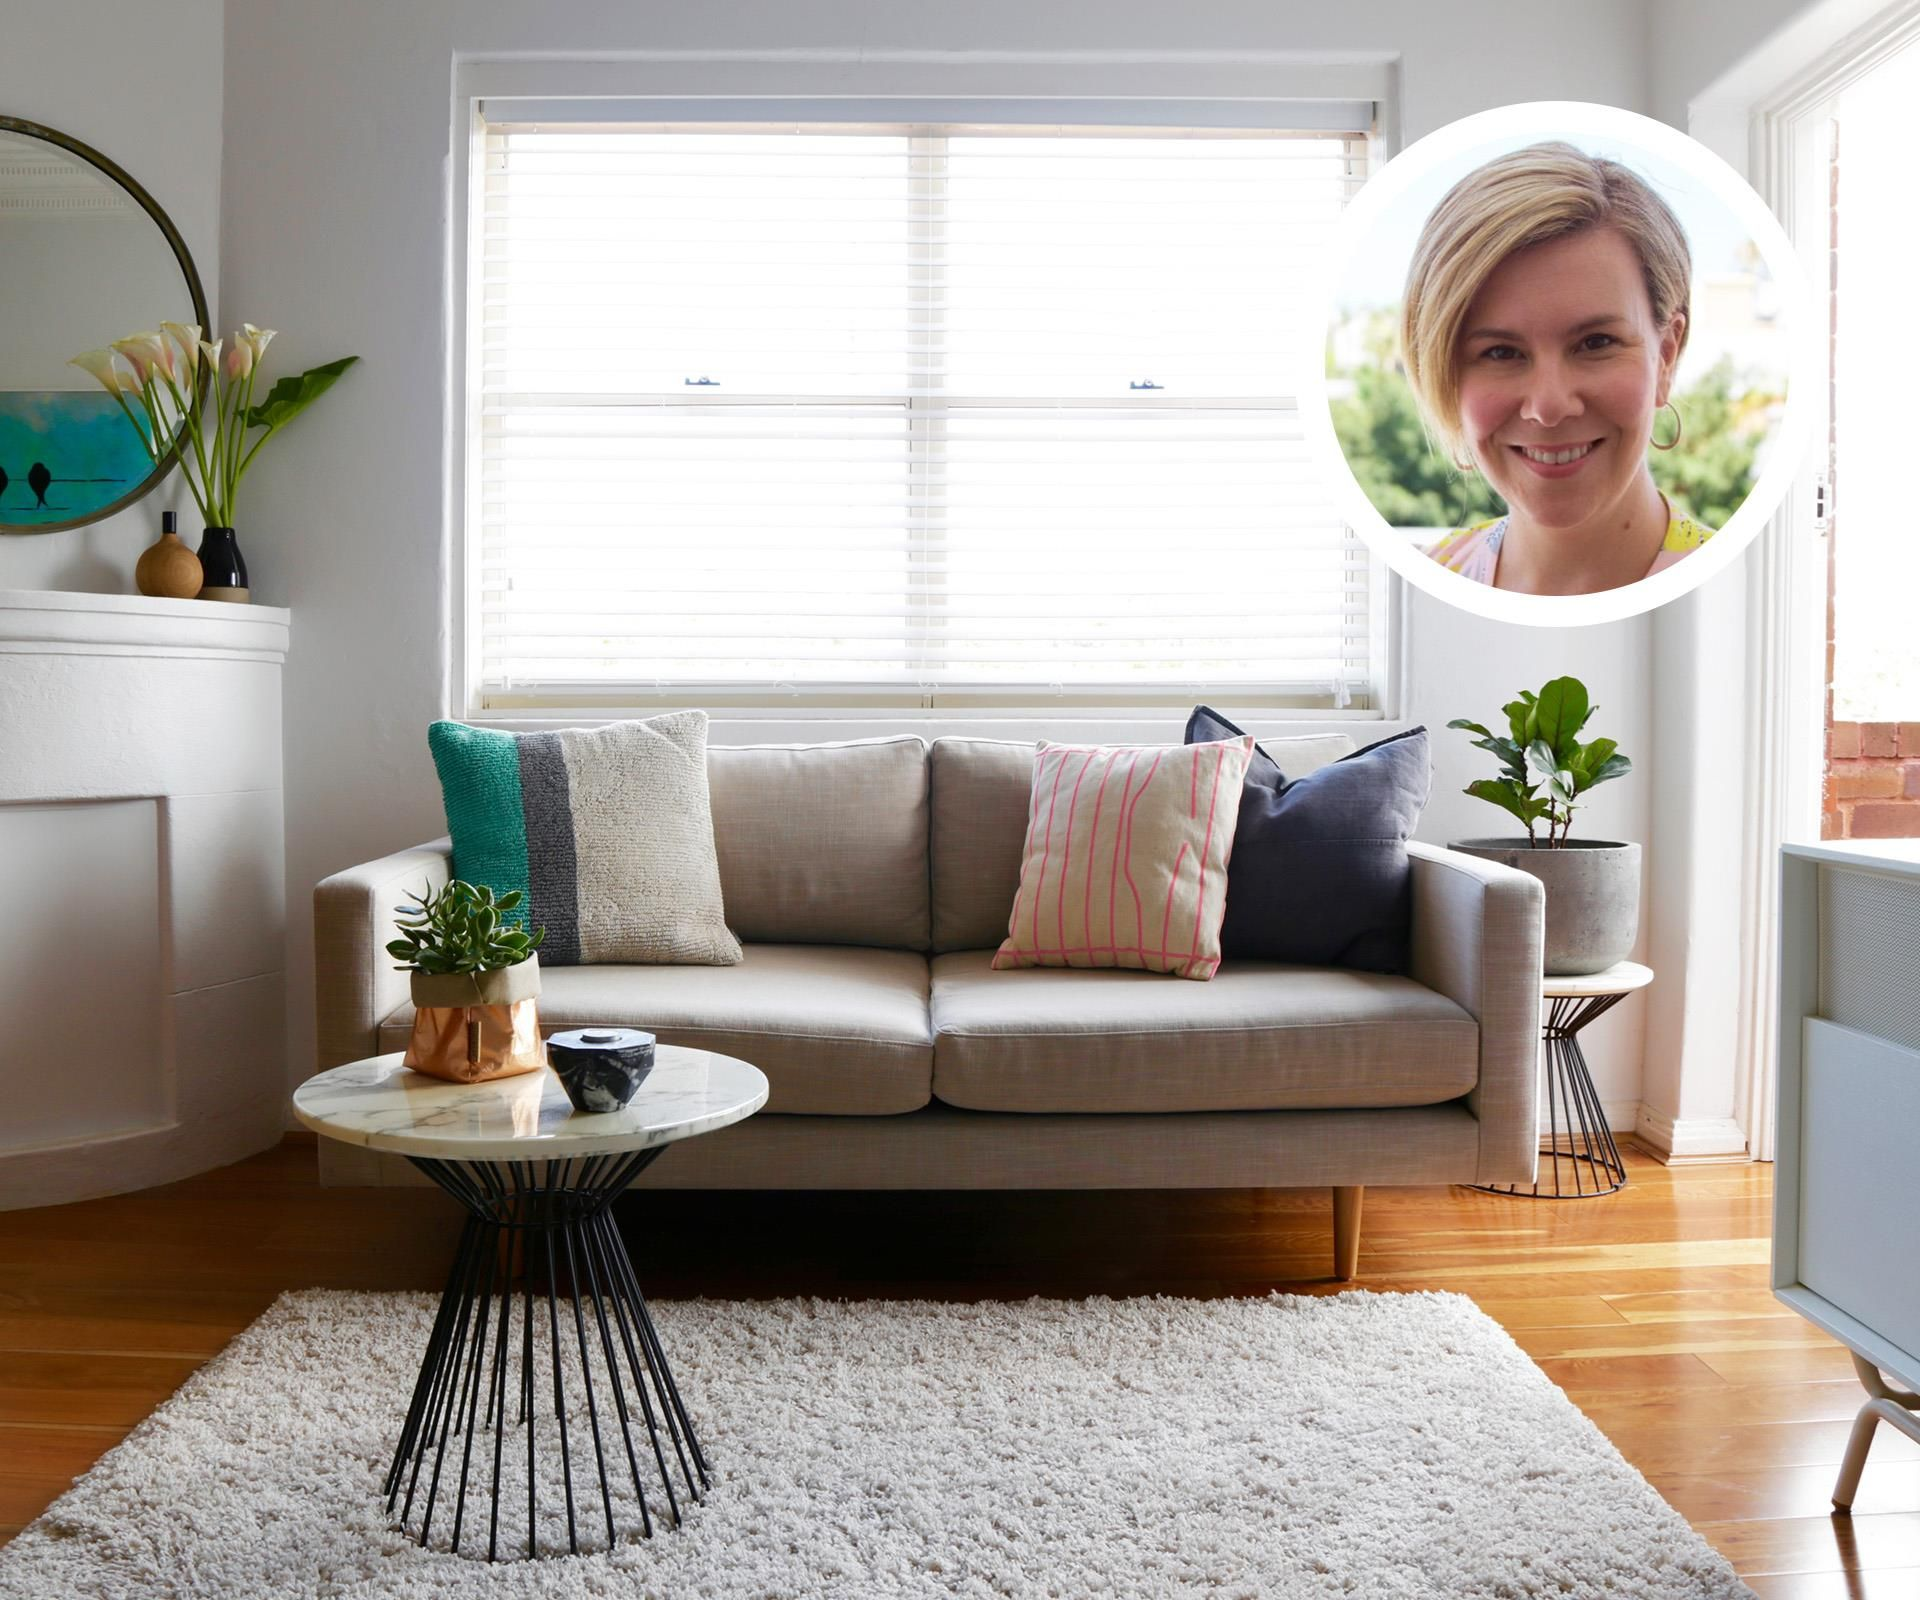 Lauren Keenan\'s 5 tips for a living room mini-makeover | Living ...